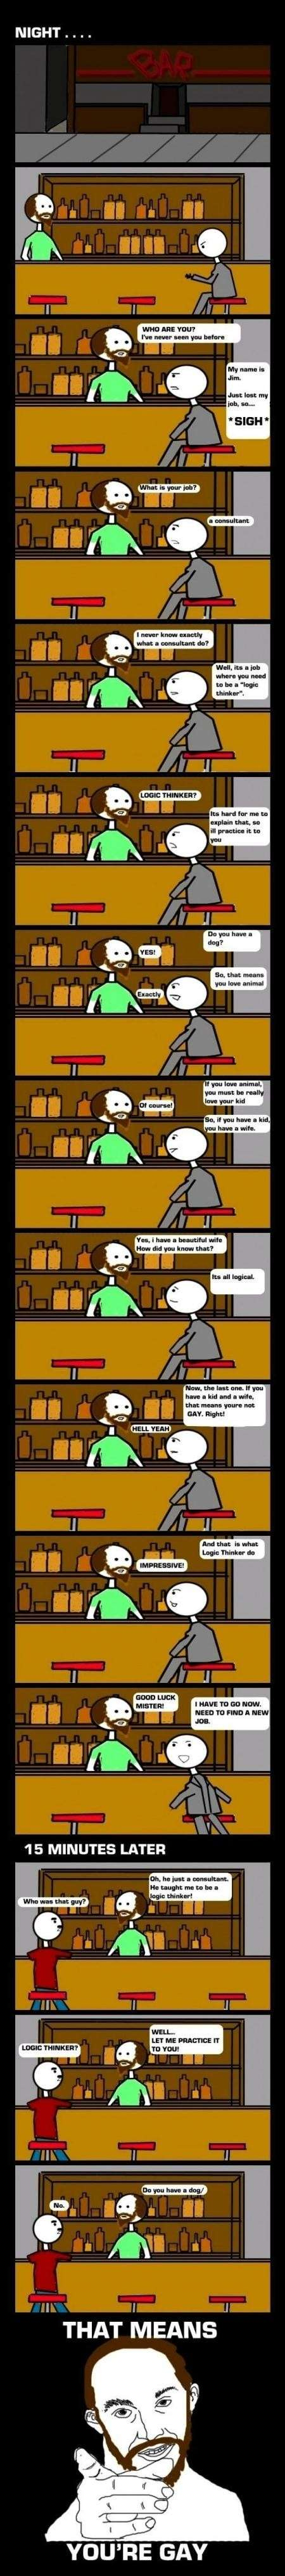 funny pictures - Page 6 Logic_10